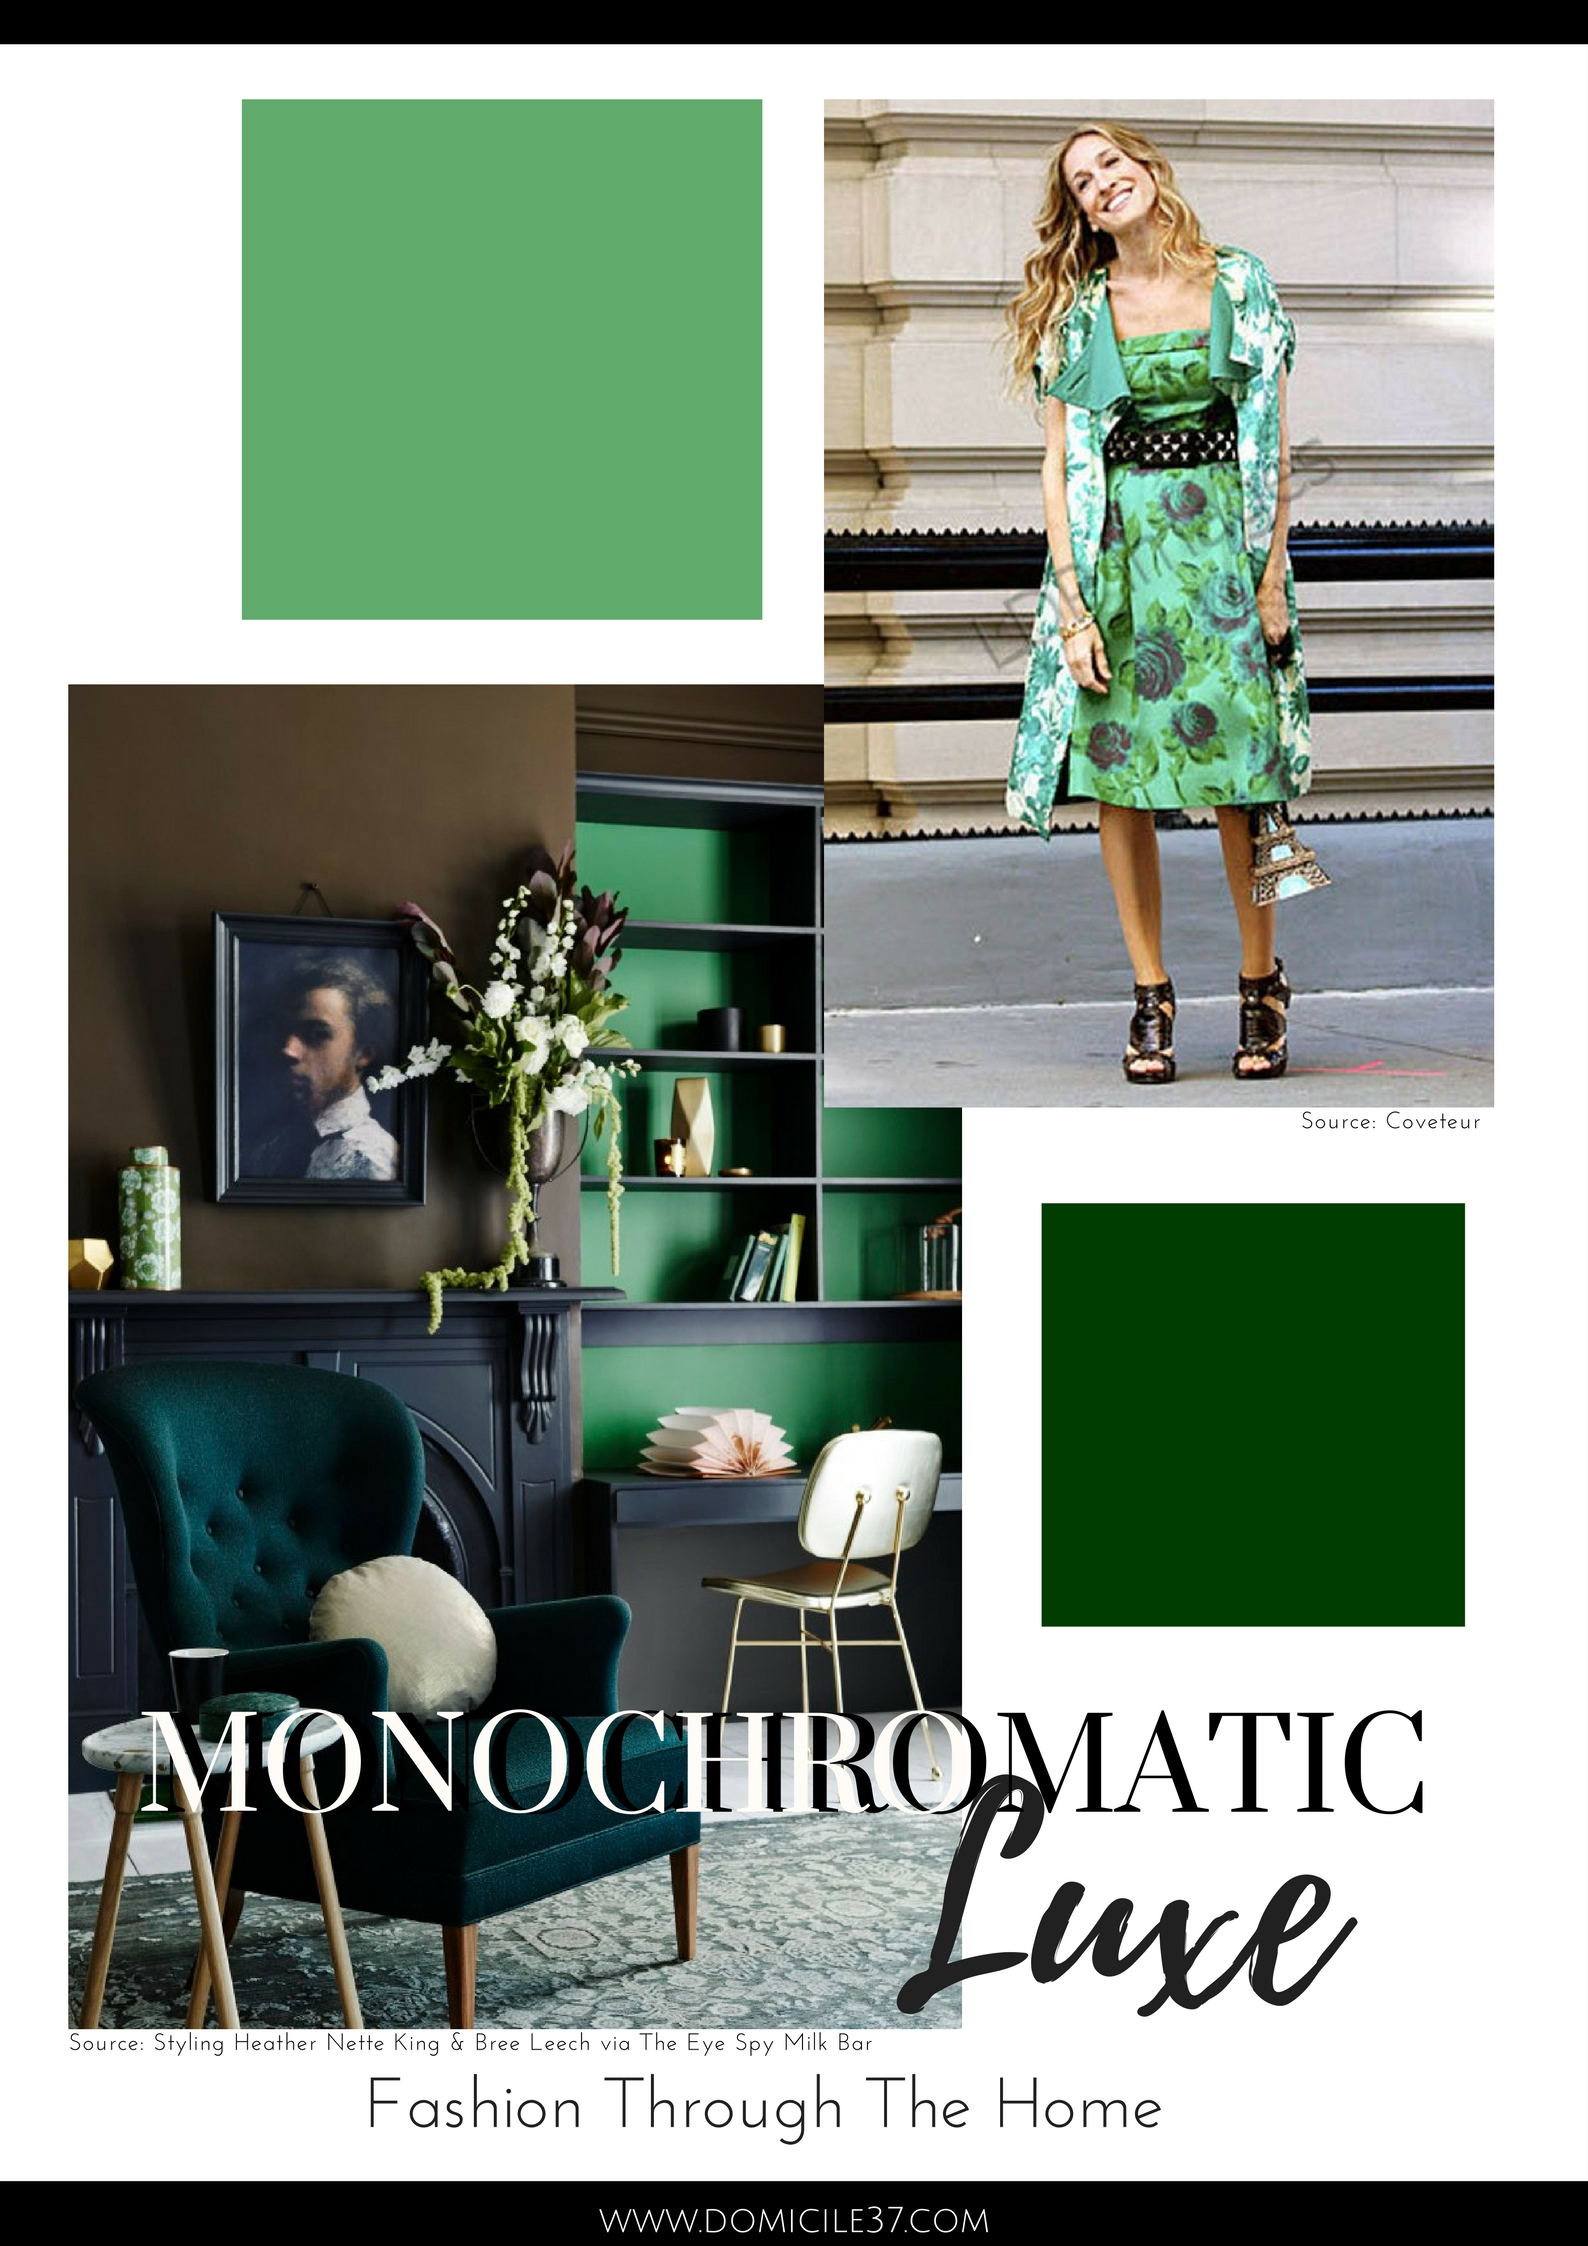 Monochromatic green decor | Moody Decor | Monochromatic fashion | Green fashion | Sarah Jessica Parker Inspiration